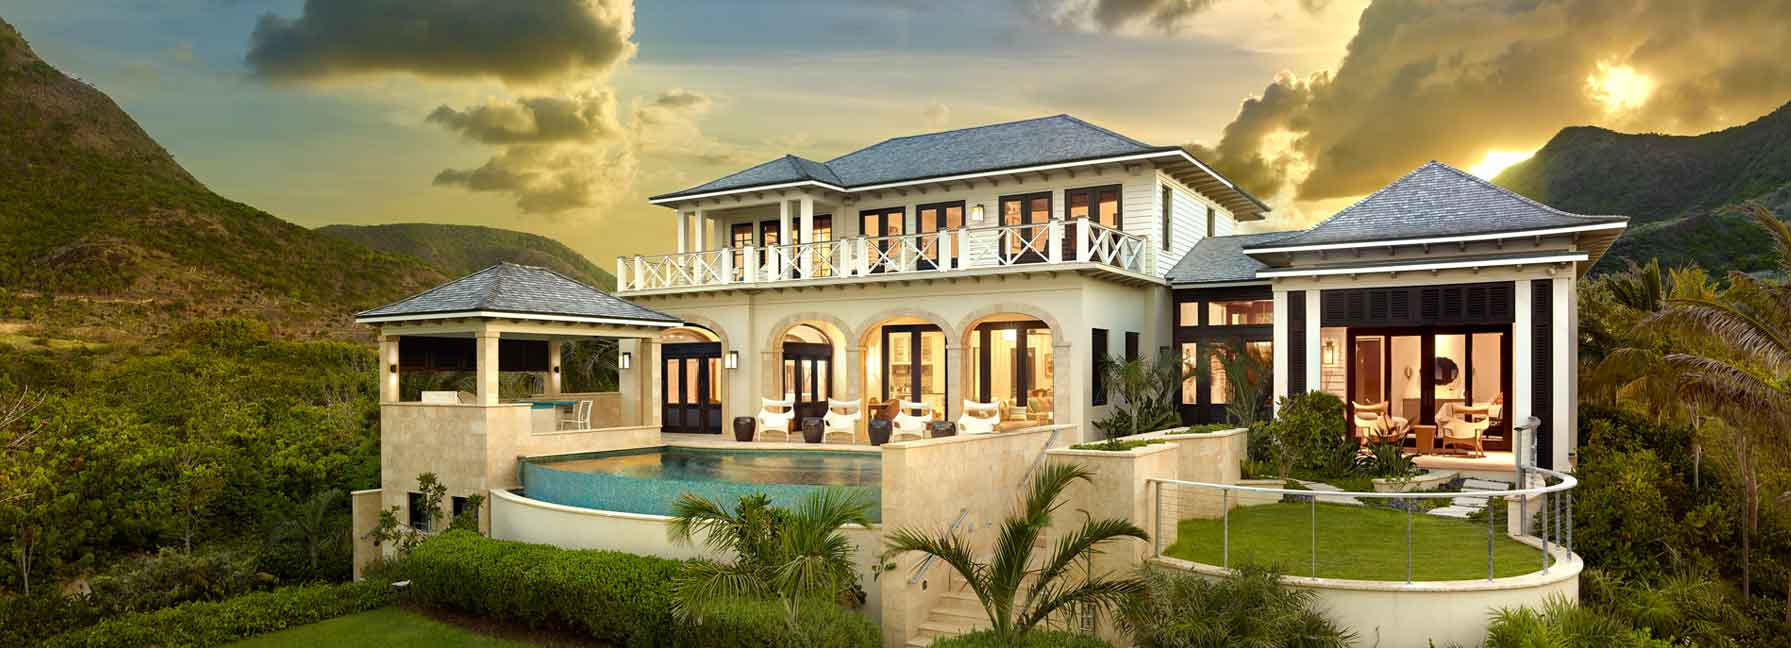 St Christophe Harbour custom homes